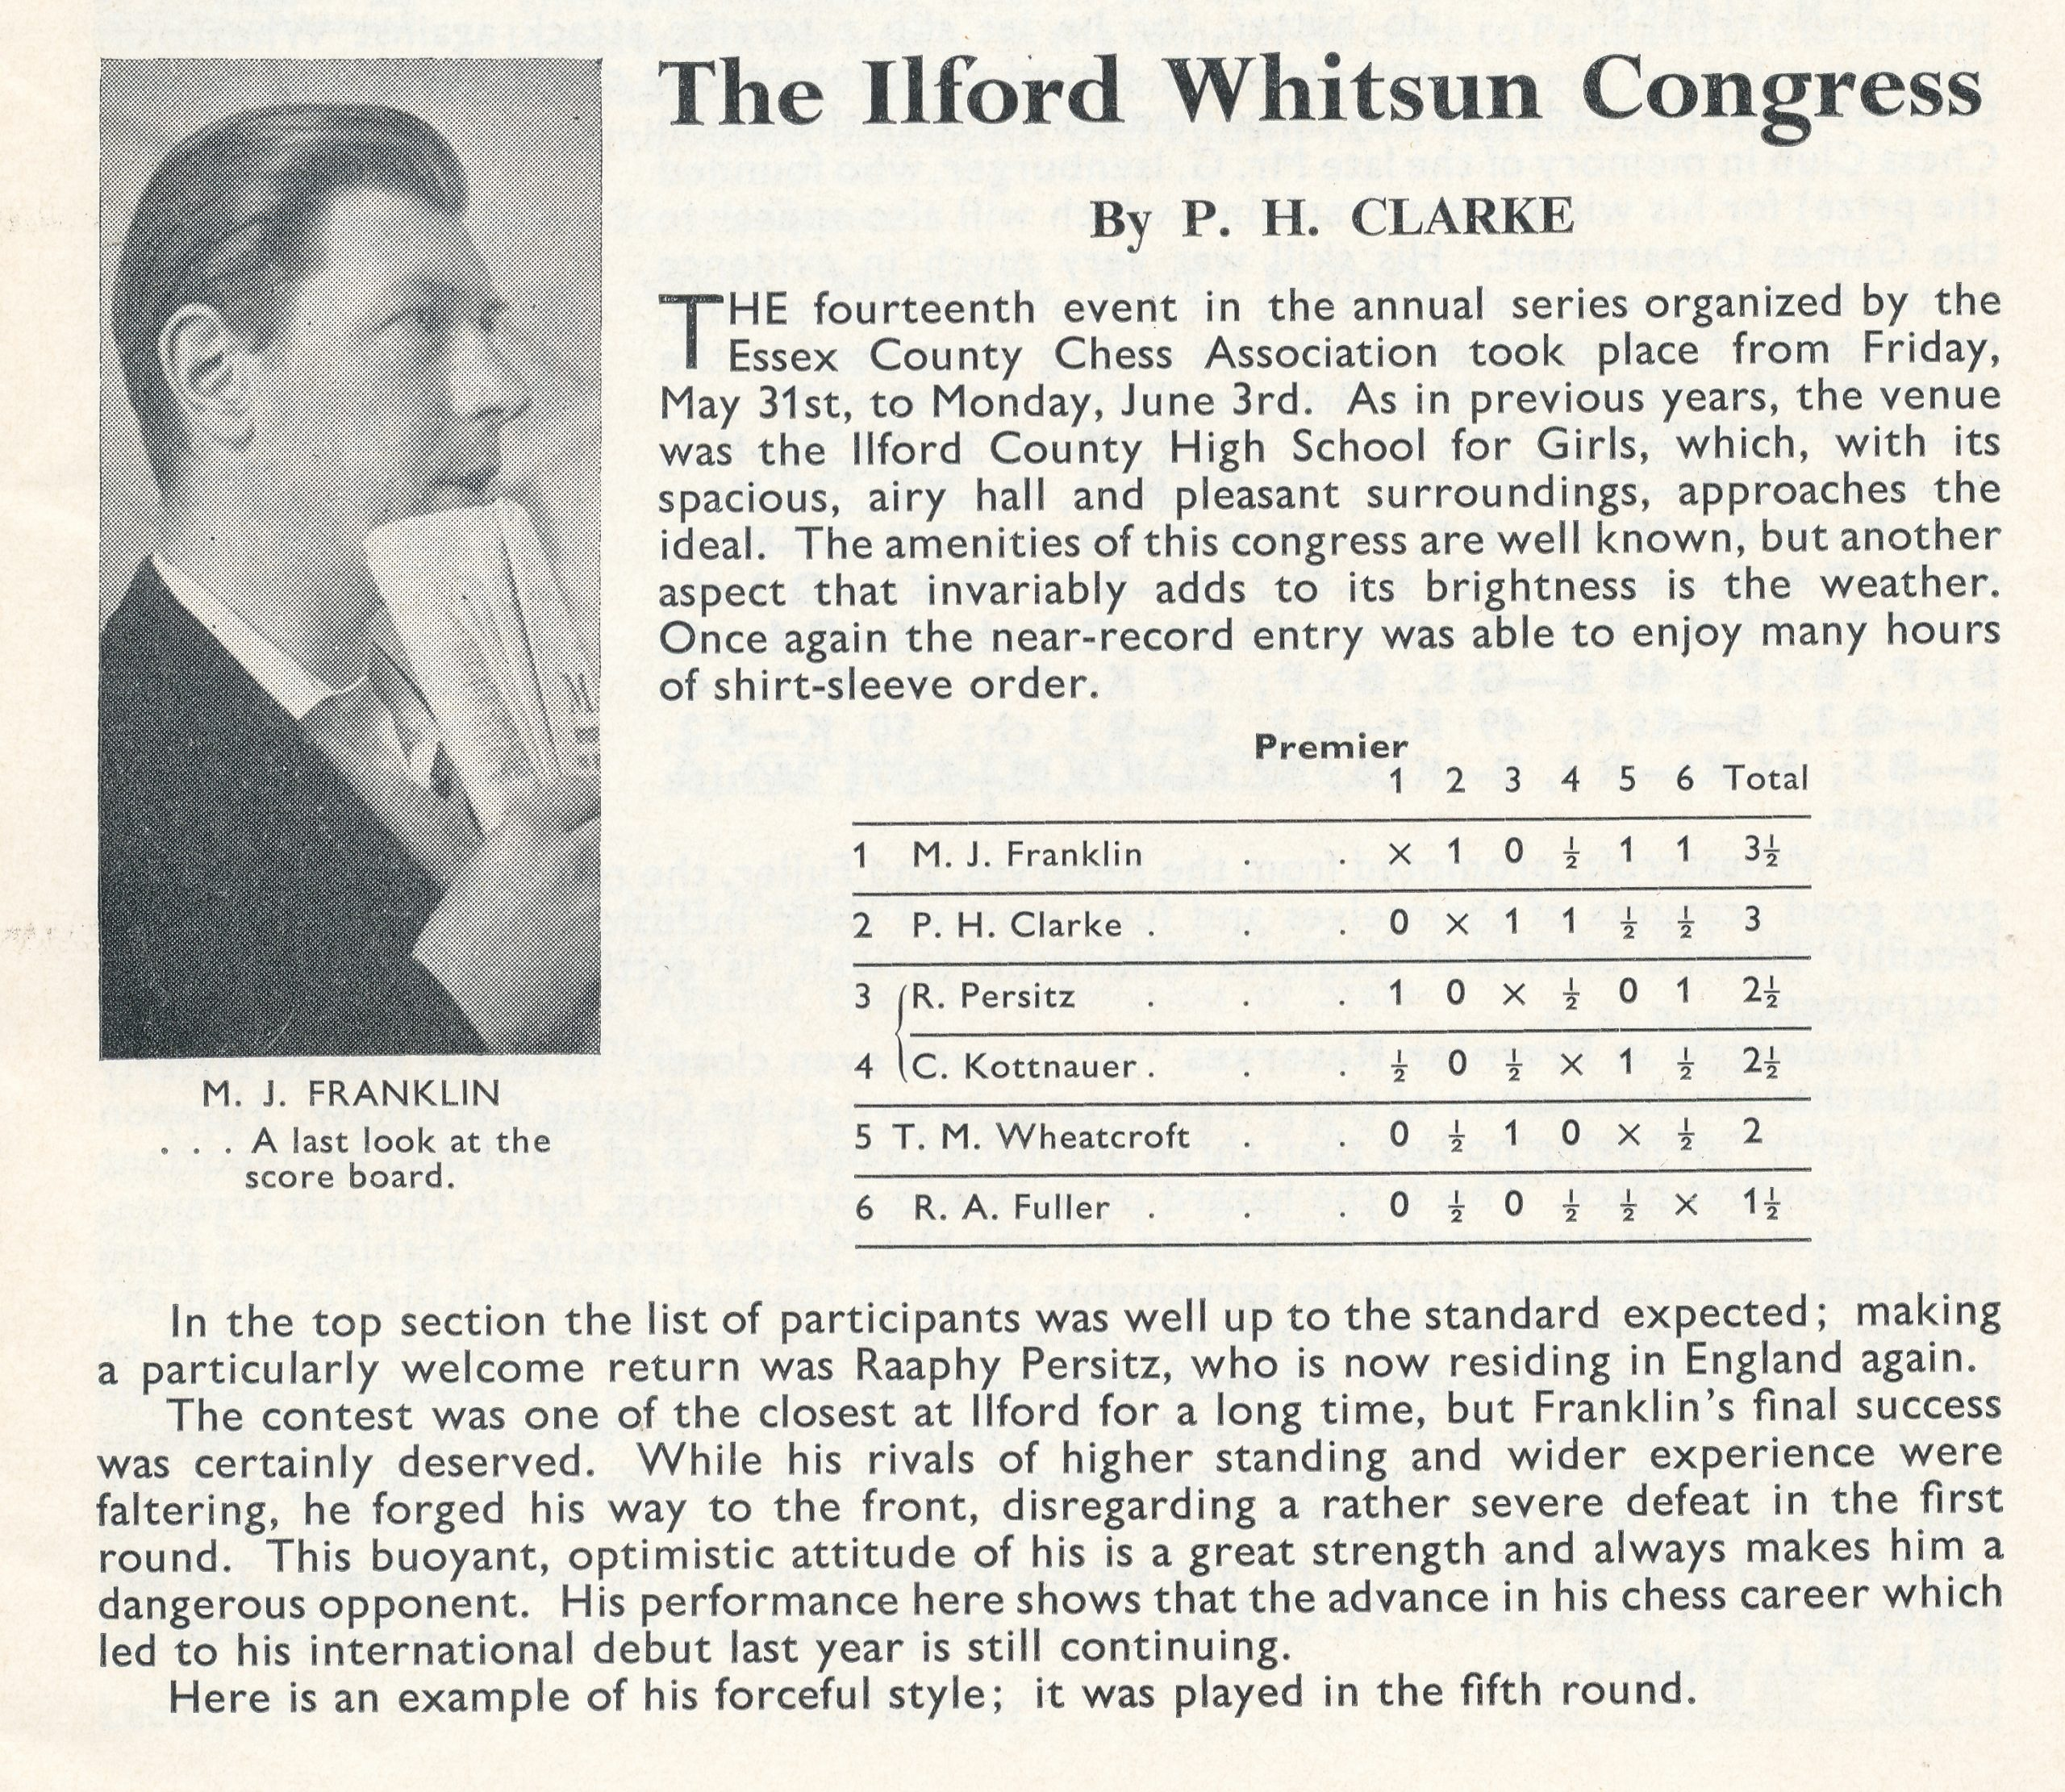 A report of Mike Franklin's success at the 1963 Ilford Whitsun Congress by Peter Clarke. Source : British Chess Magazine, Volume LXXXIII, Number 7 (July), page 193